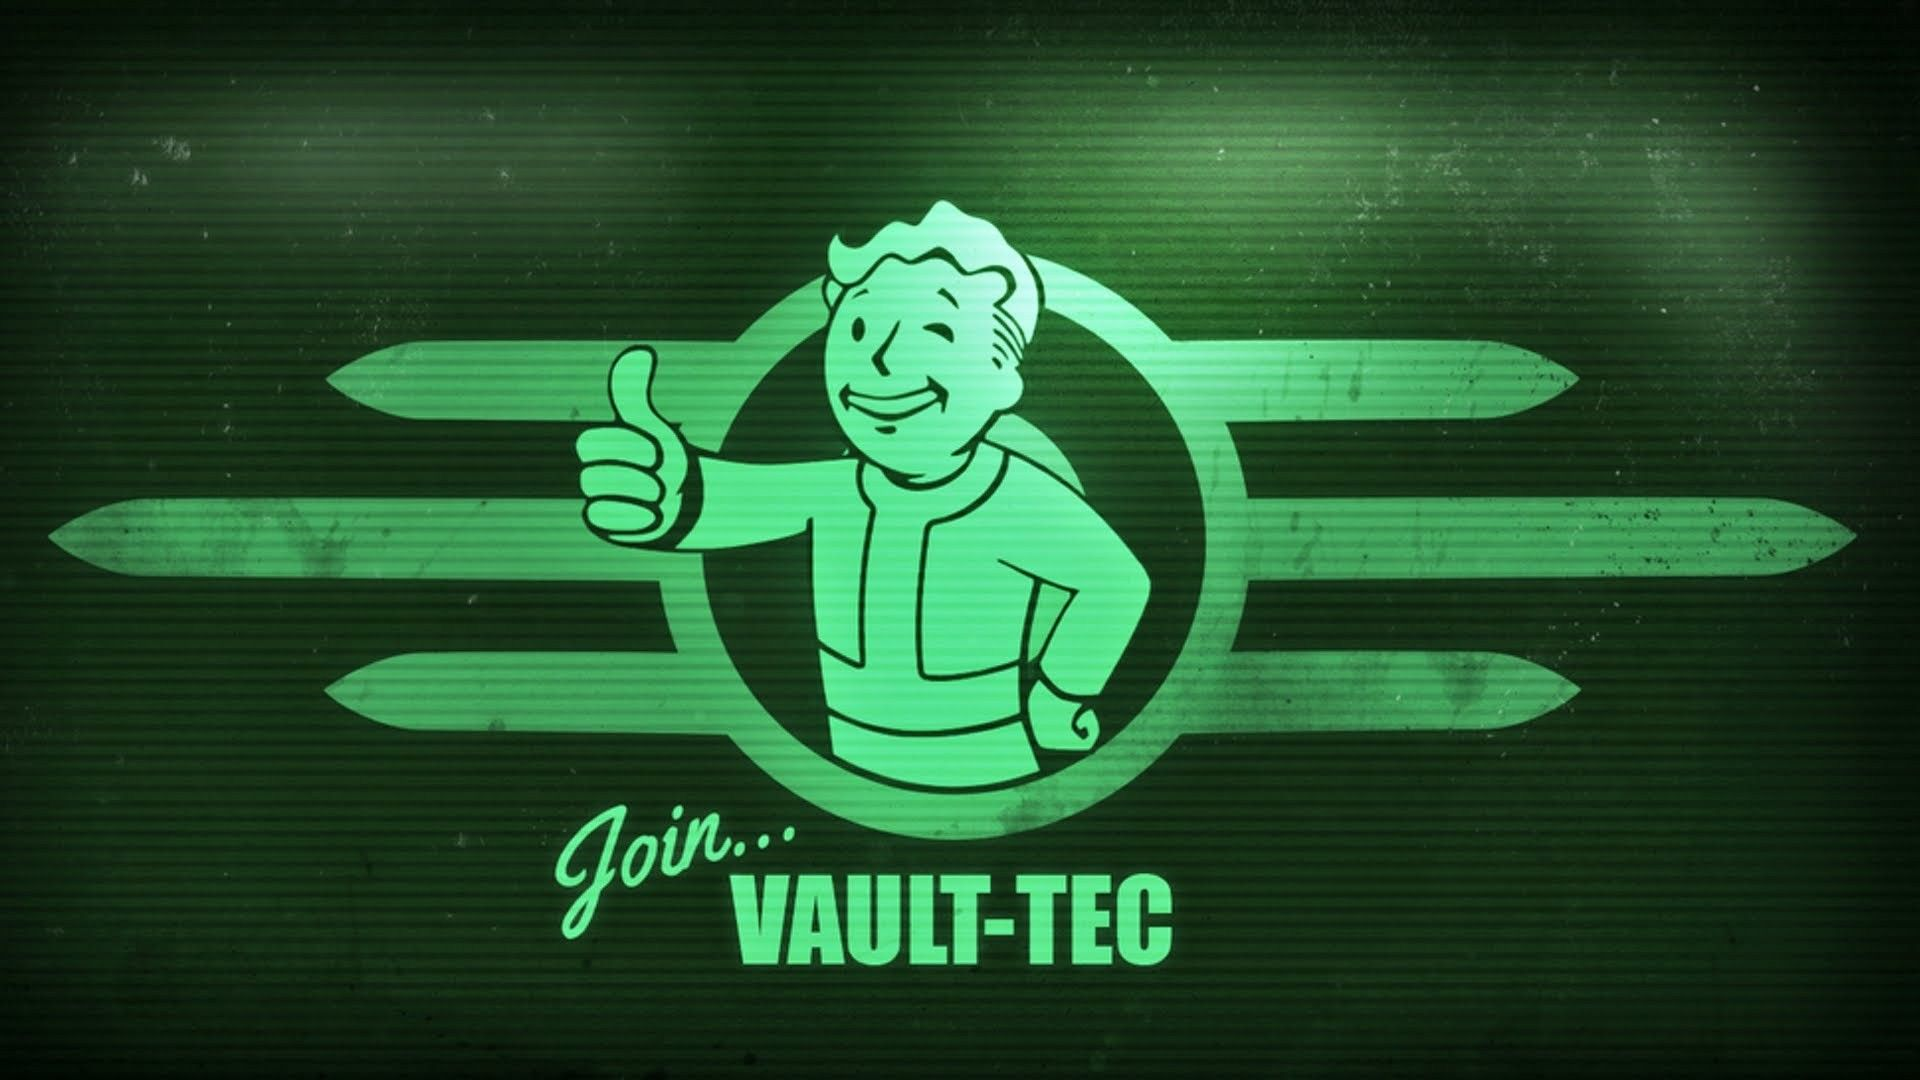 Vault Boy Wallpaper 1920x1080 Meizu Fallout Wallpaper Boys Wallpaper Fallout 4 Vault Boy